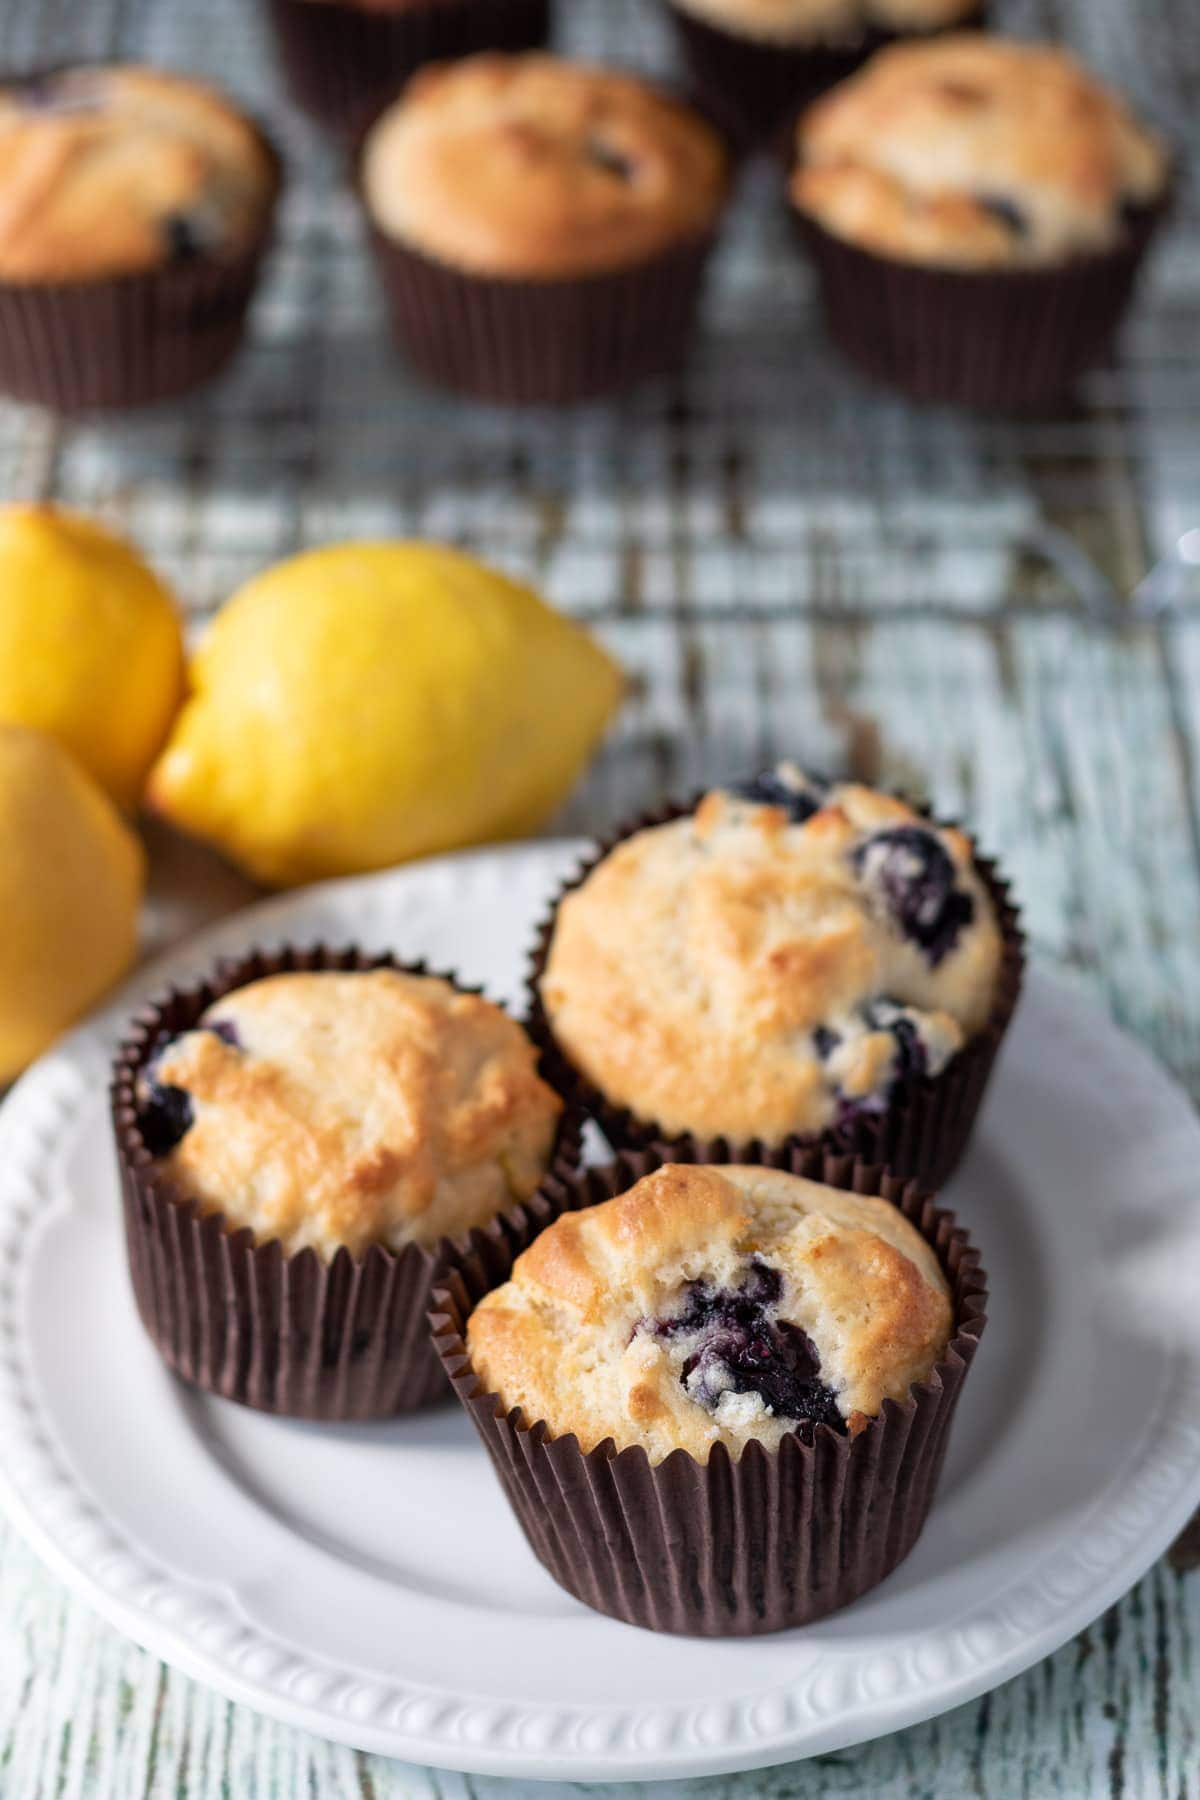 A plate of three lemon blueberry muffins with a wire rack on muffins in the background and lemons in between.